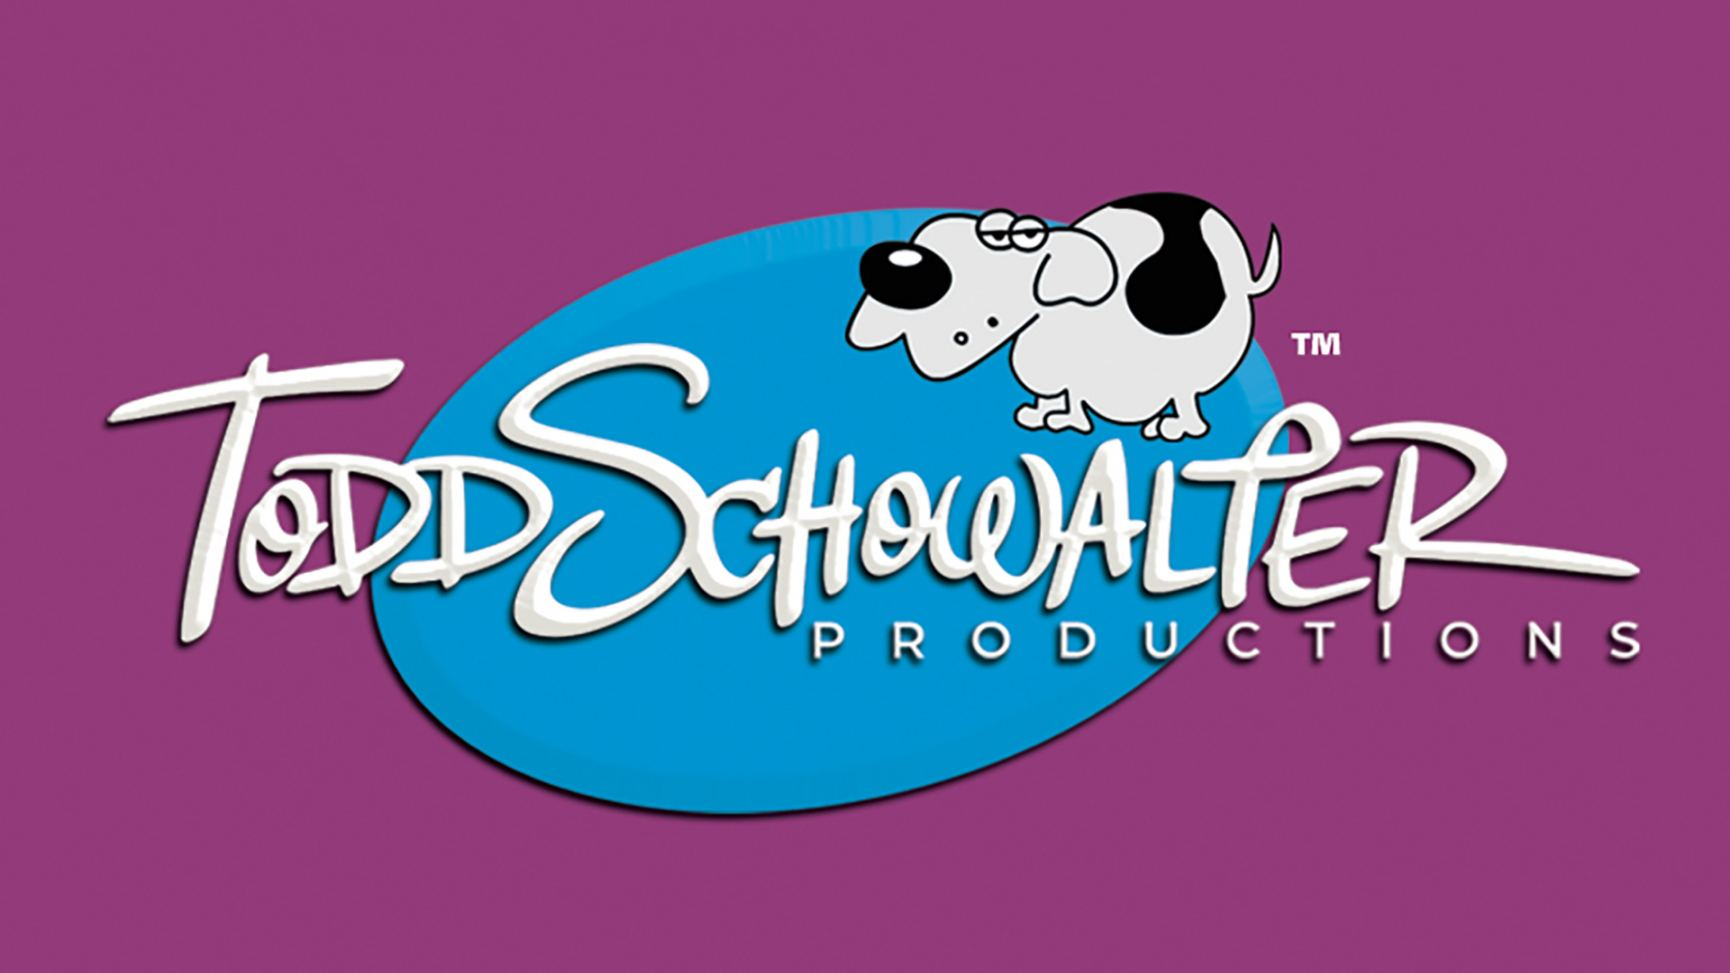 Todd Schowalter Productions Logo